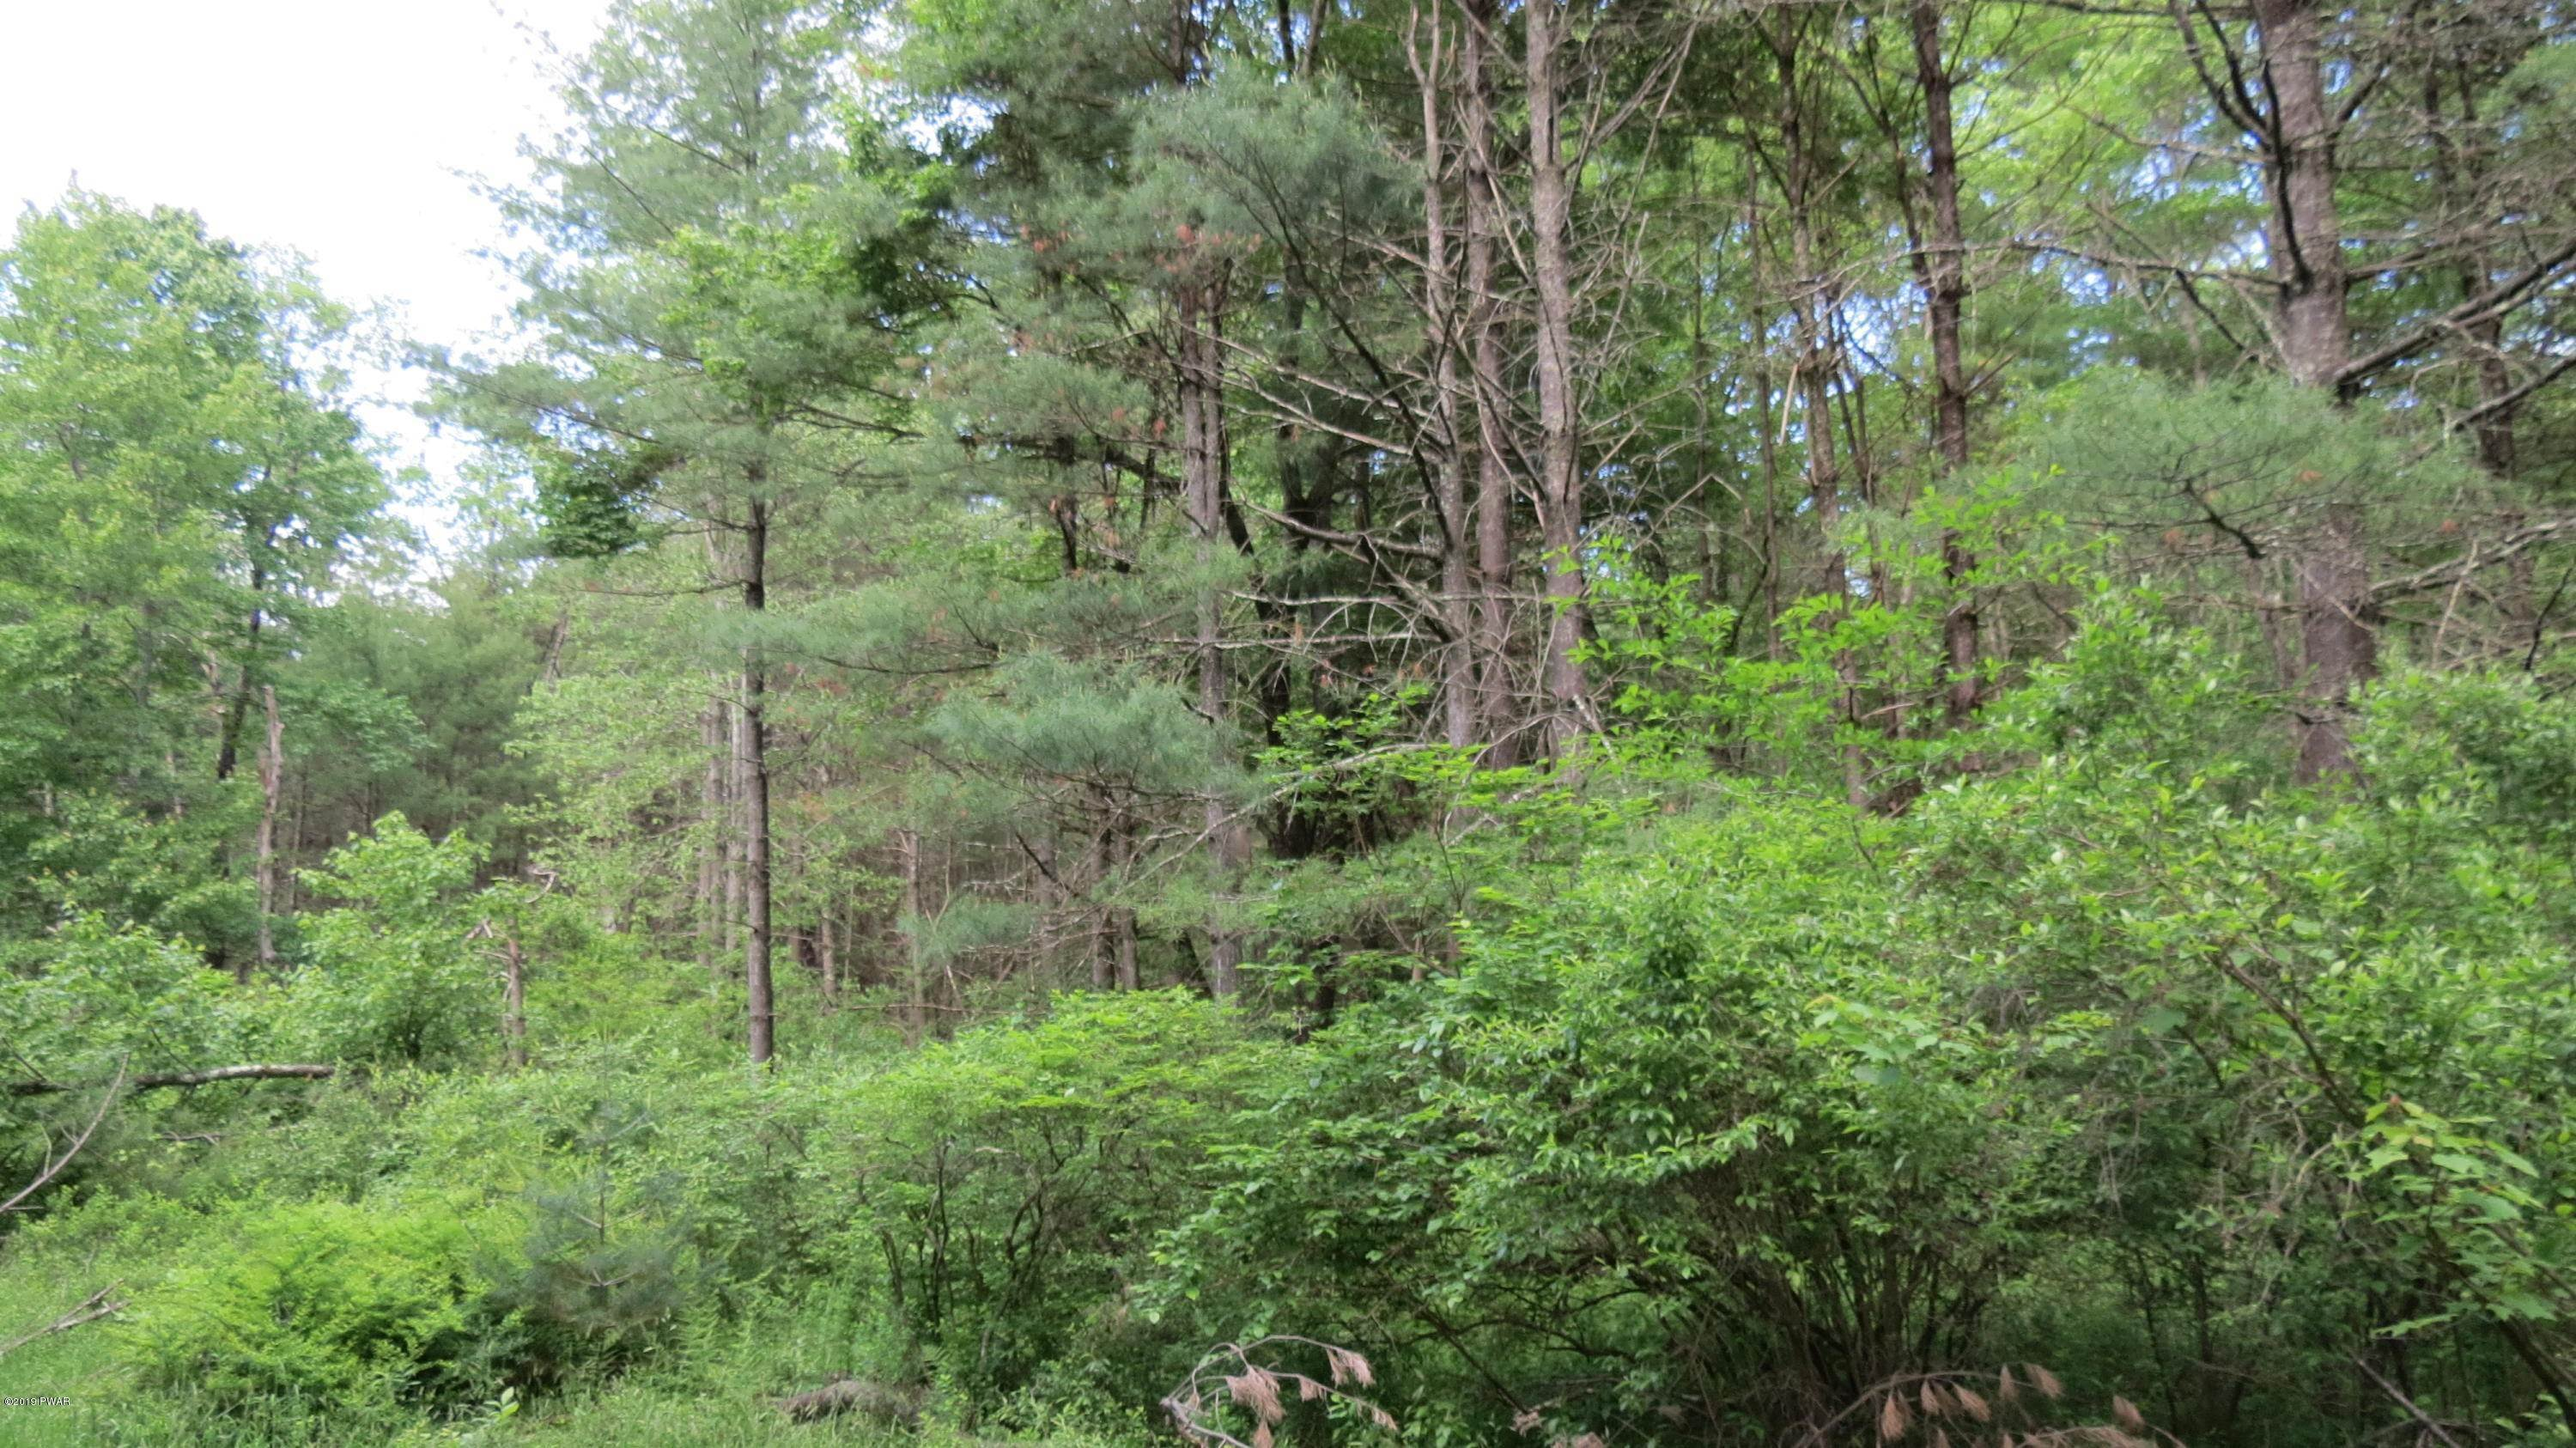 Property for Sale at Lot # 15 Swamp Pond Rd Narrowsburg, New York 12764 United States